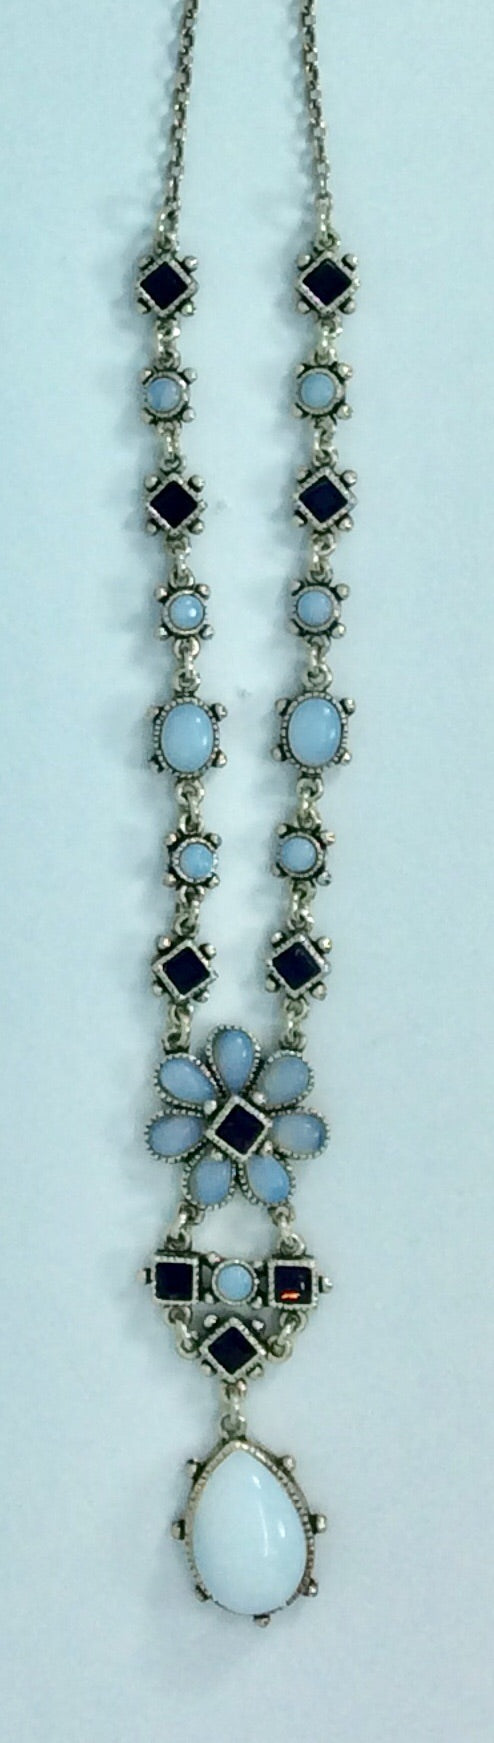 From Paris opaque white and amethyst crystals silver plated